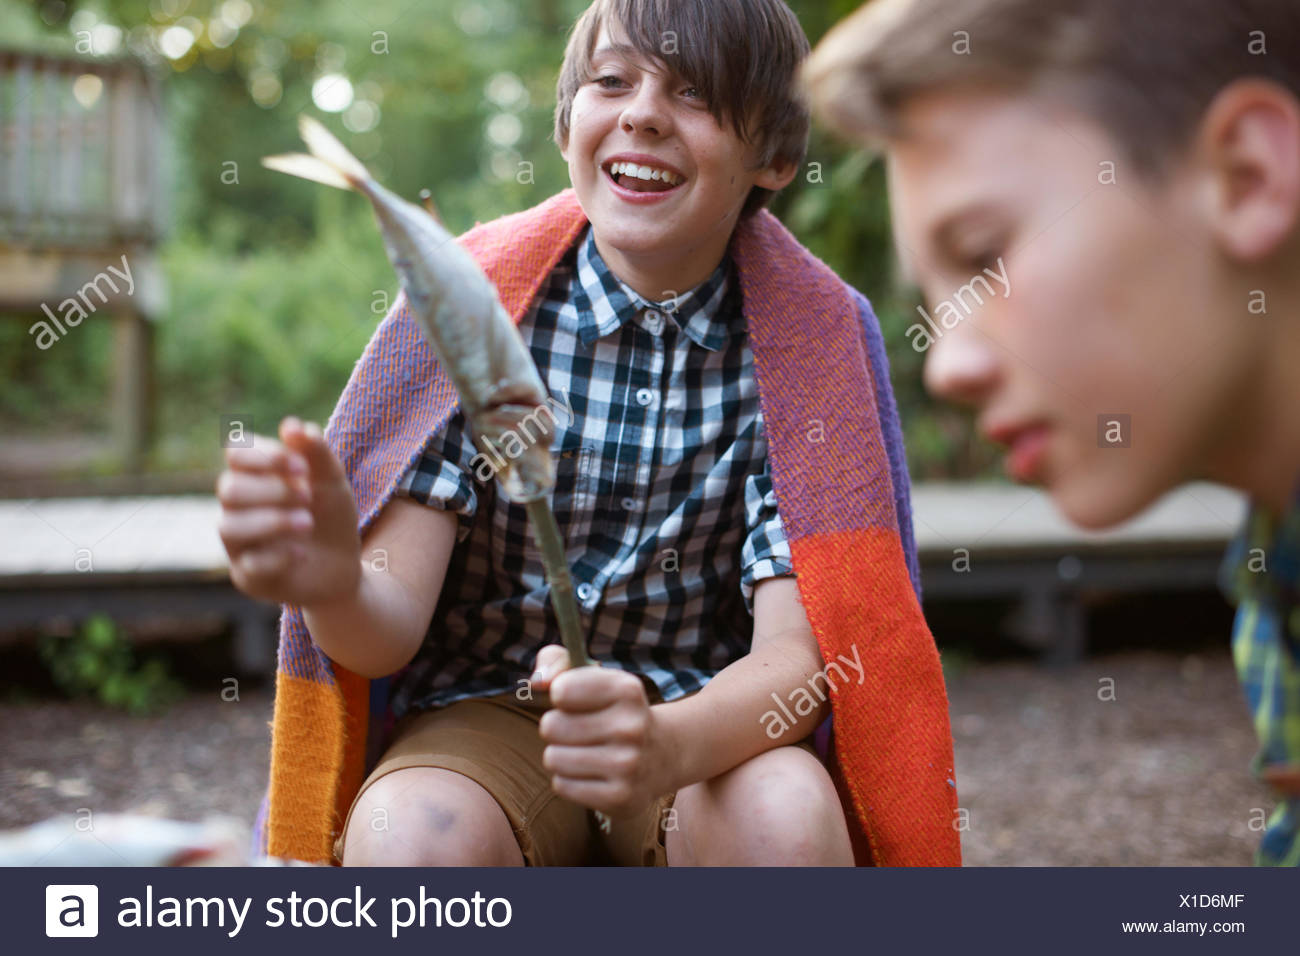 Young boy holding stick with fish on ready to barbecue - Stock Image